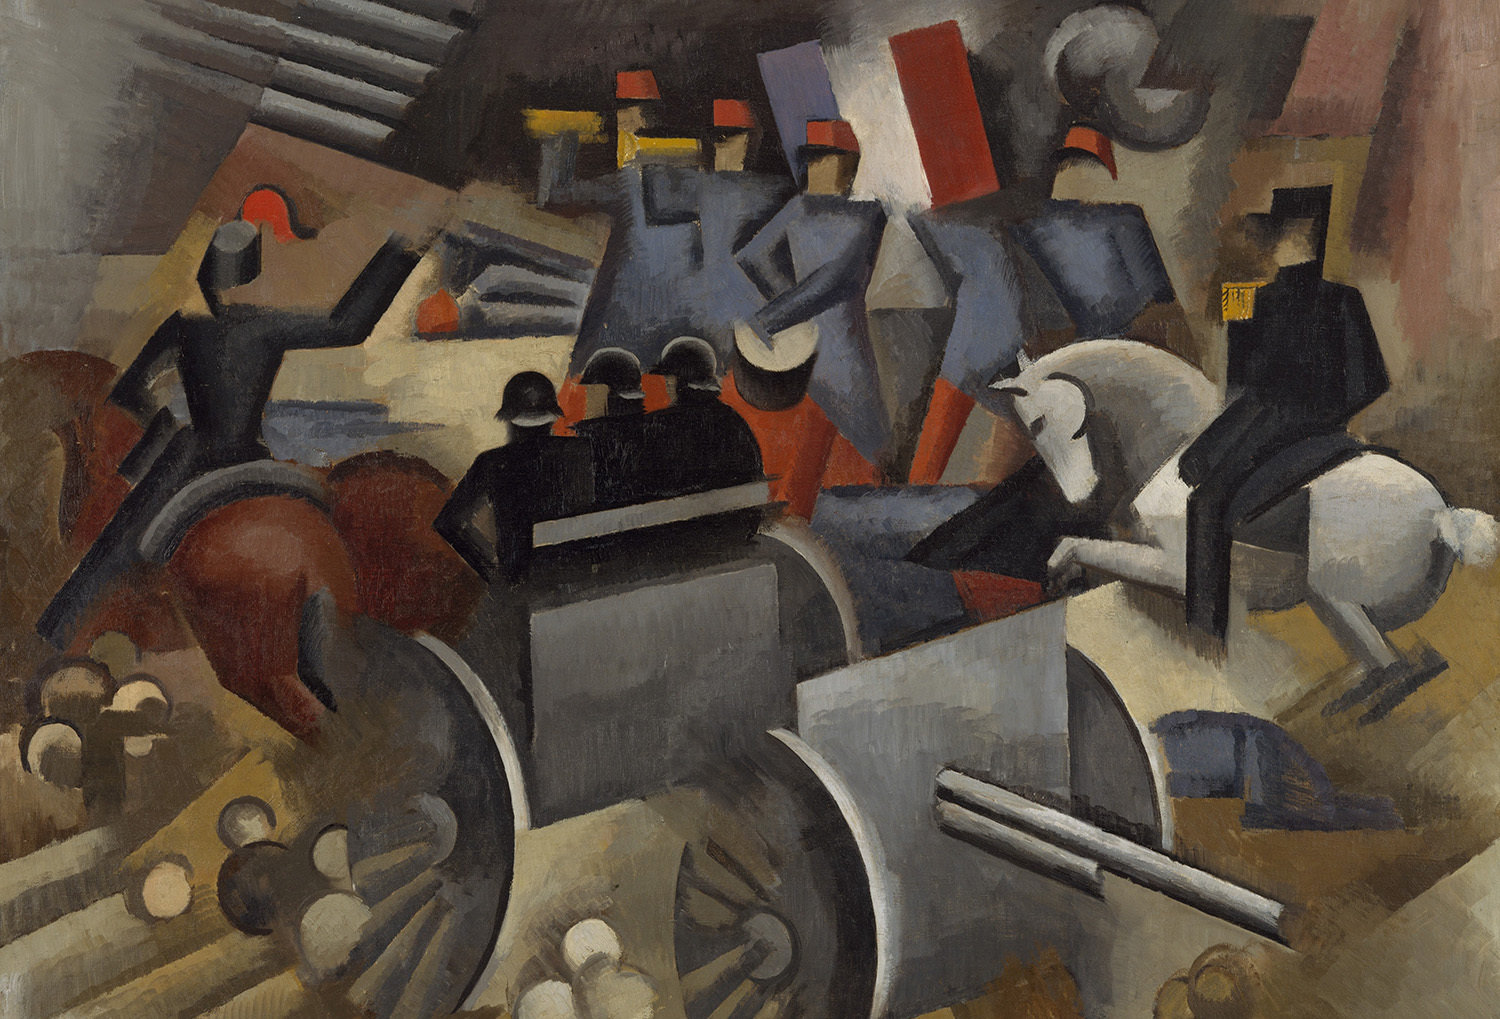 Artillery, 1911, Roger de la Fresnaye, The Metropolitan Museum of Art, Public Domain Mark